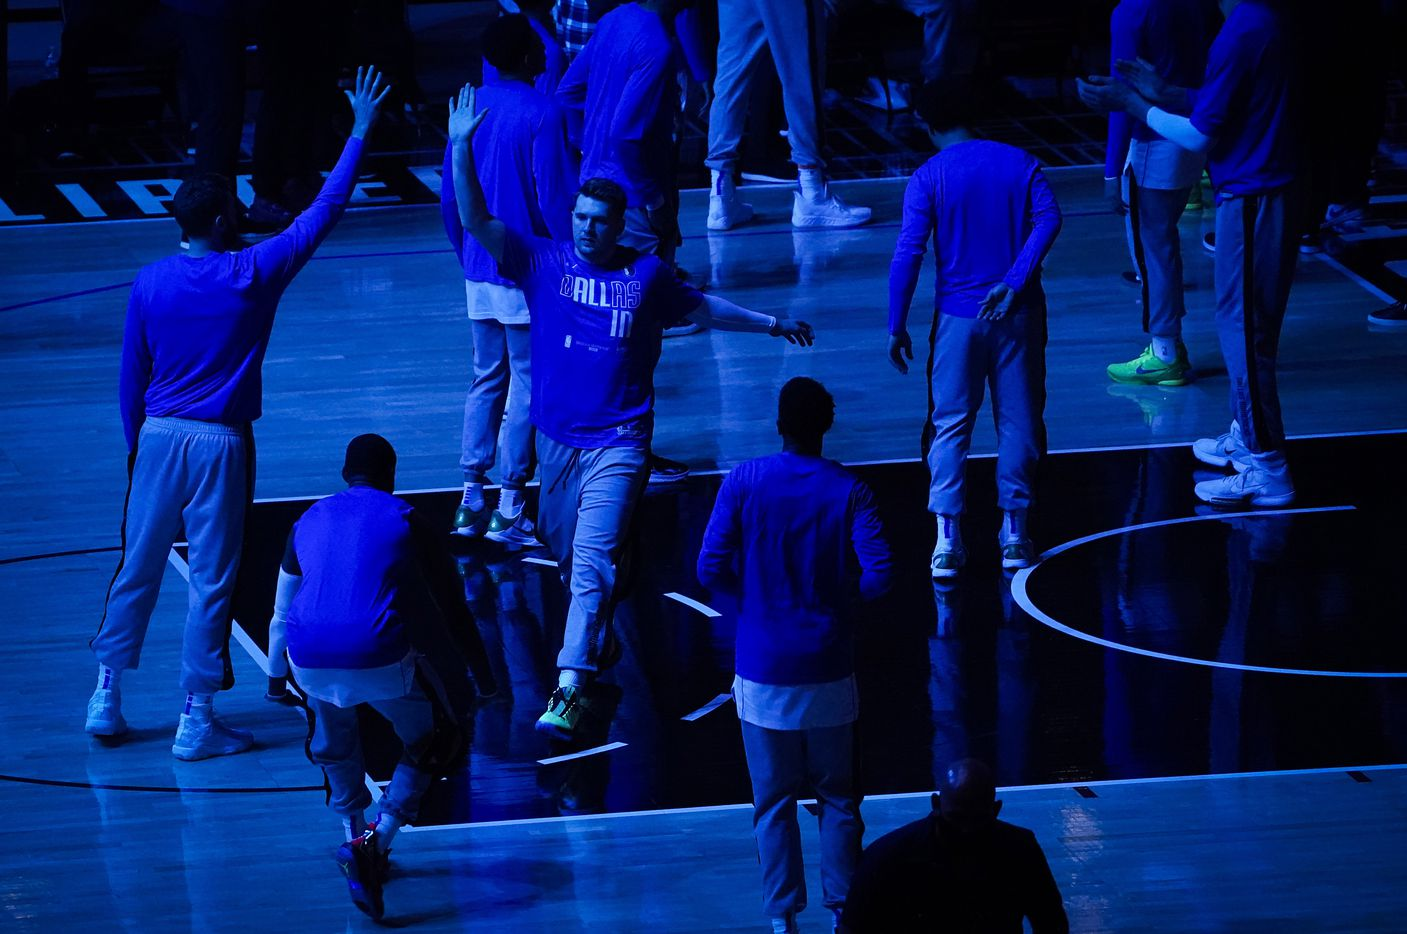 Dallas Mavericks guard Luka Doncic takes the court before an NBA playoff basketball game between the Dallas Mavericks and the LA Clippers at Staples Center on Saturday, May 22, 2021, in Los Angeles.